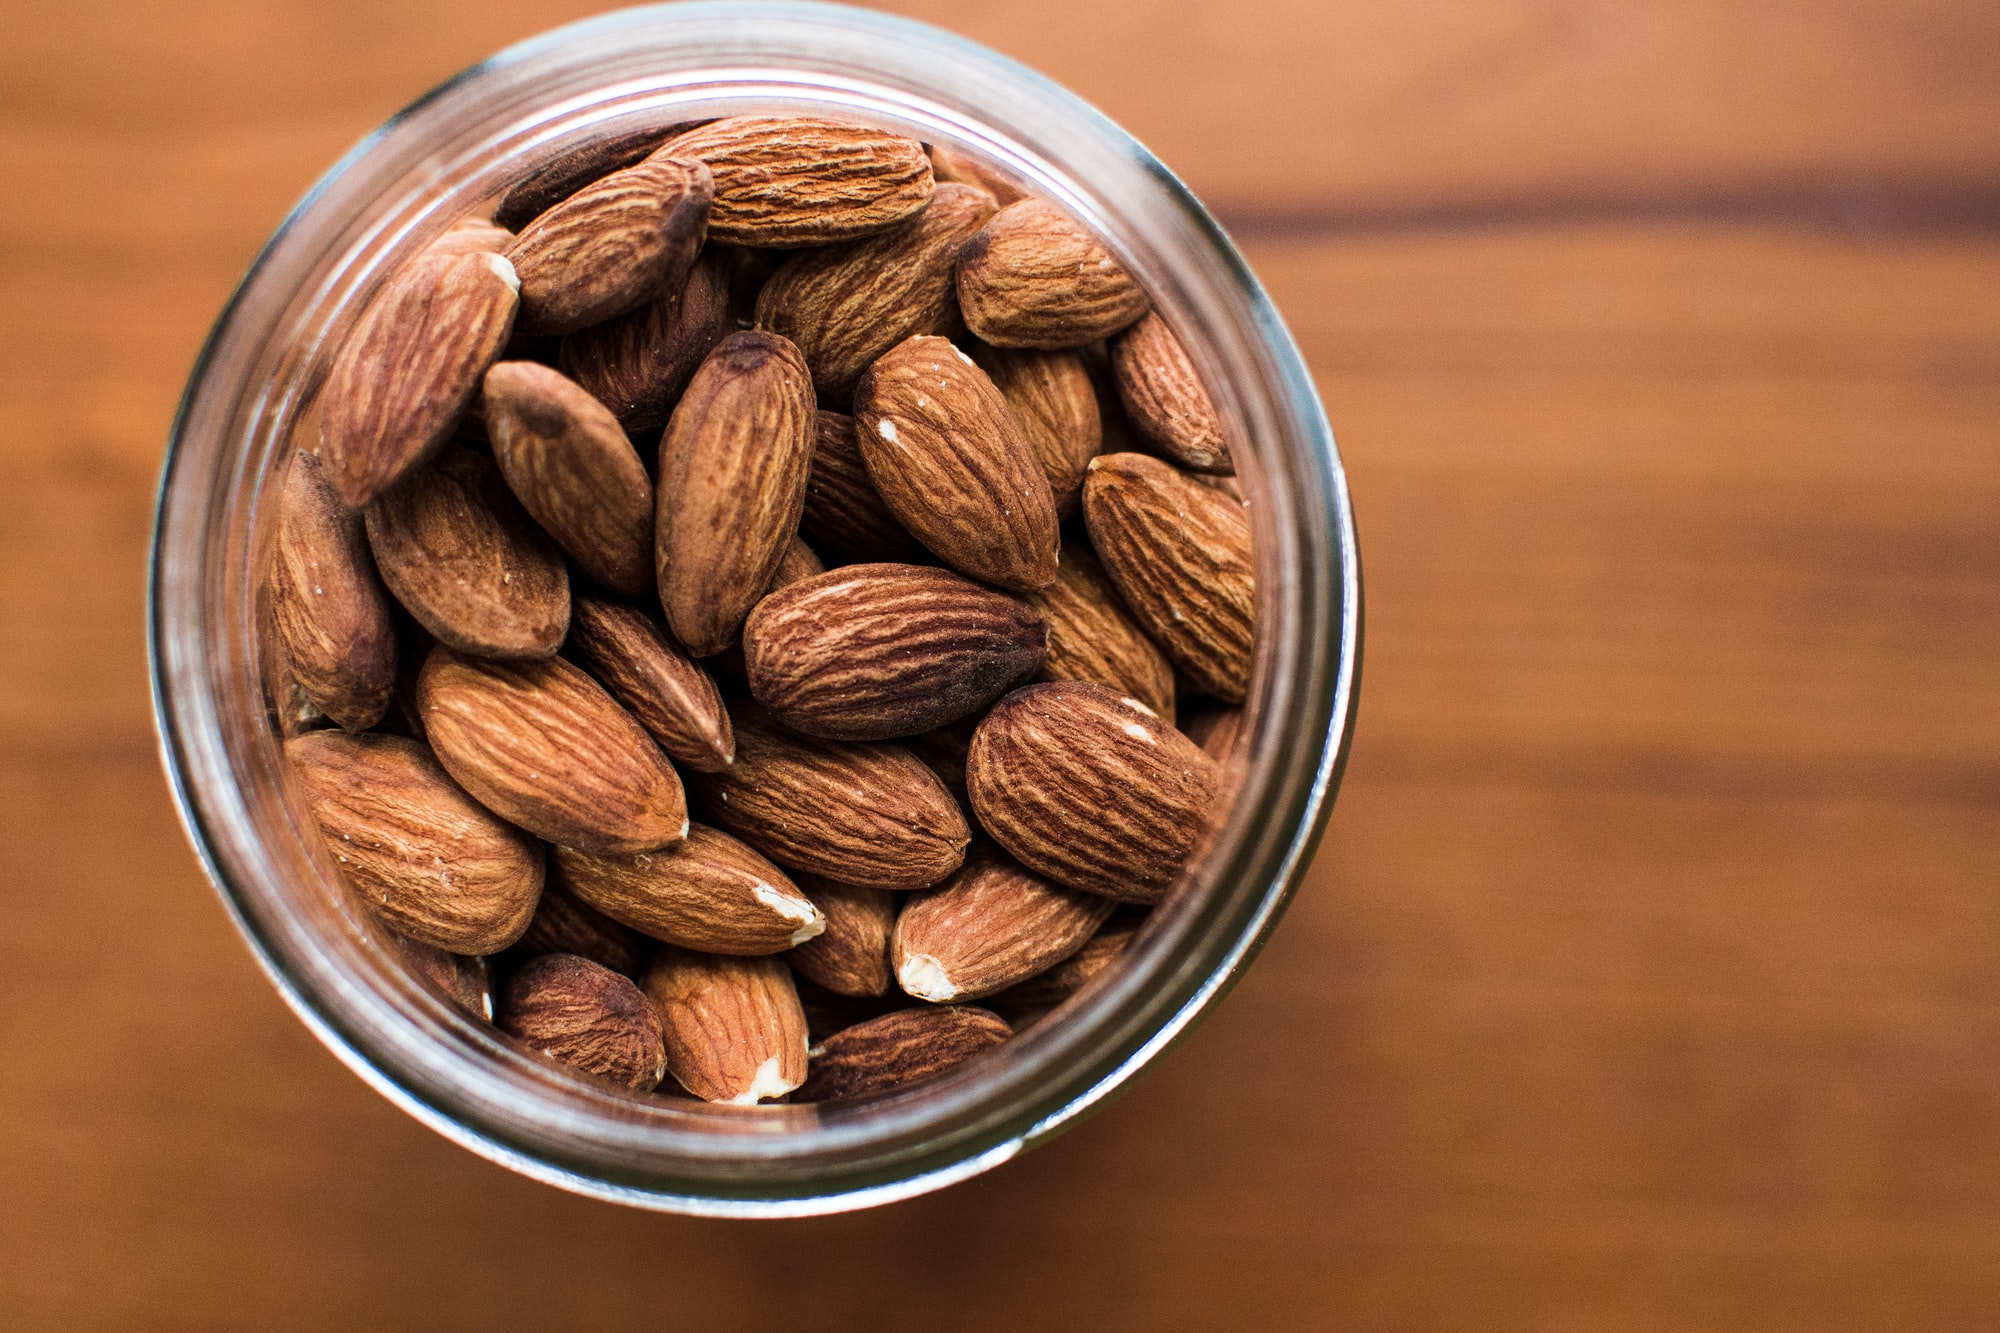 What chemicals does an almond contain?